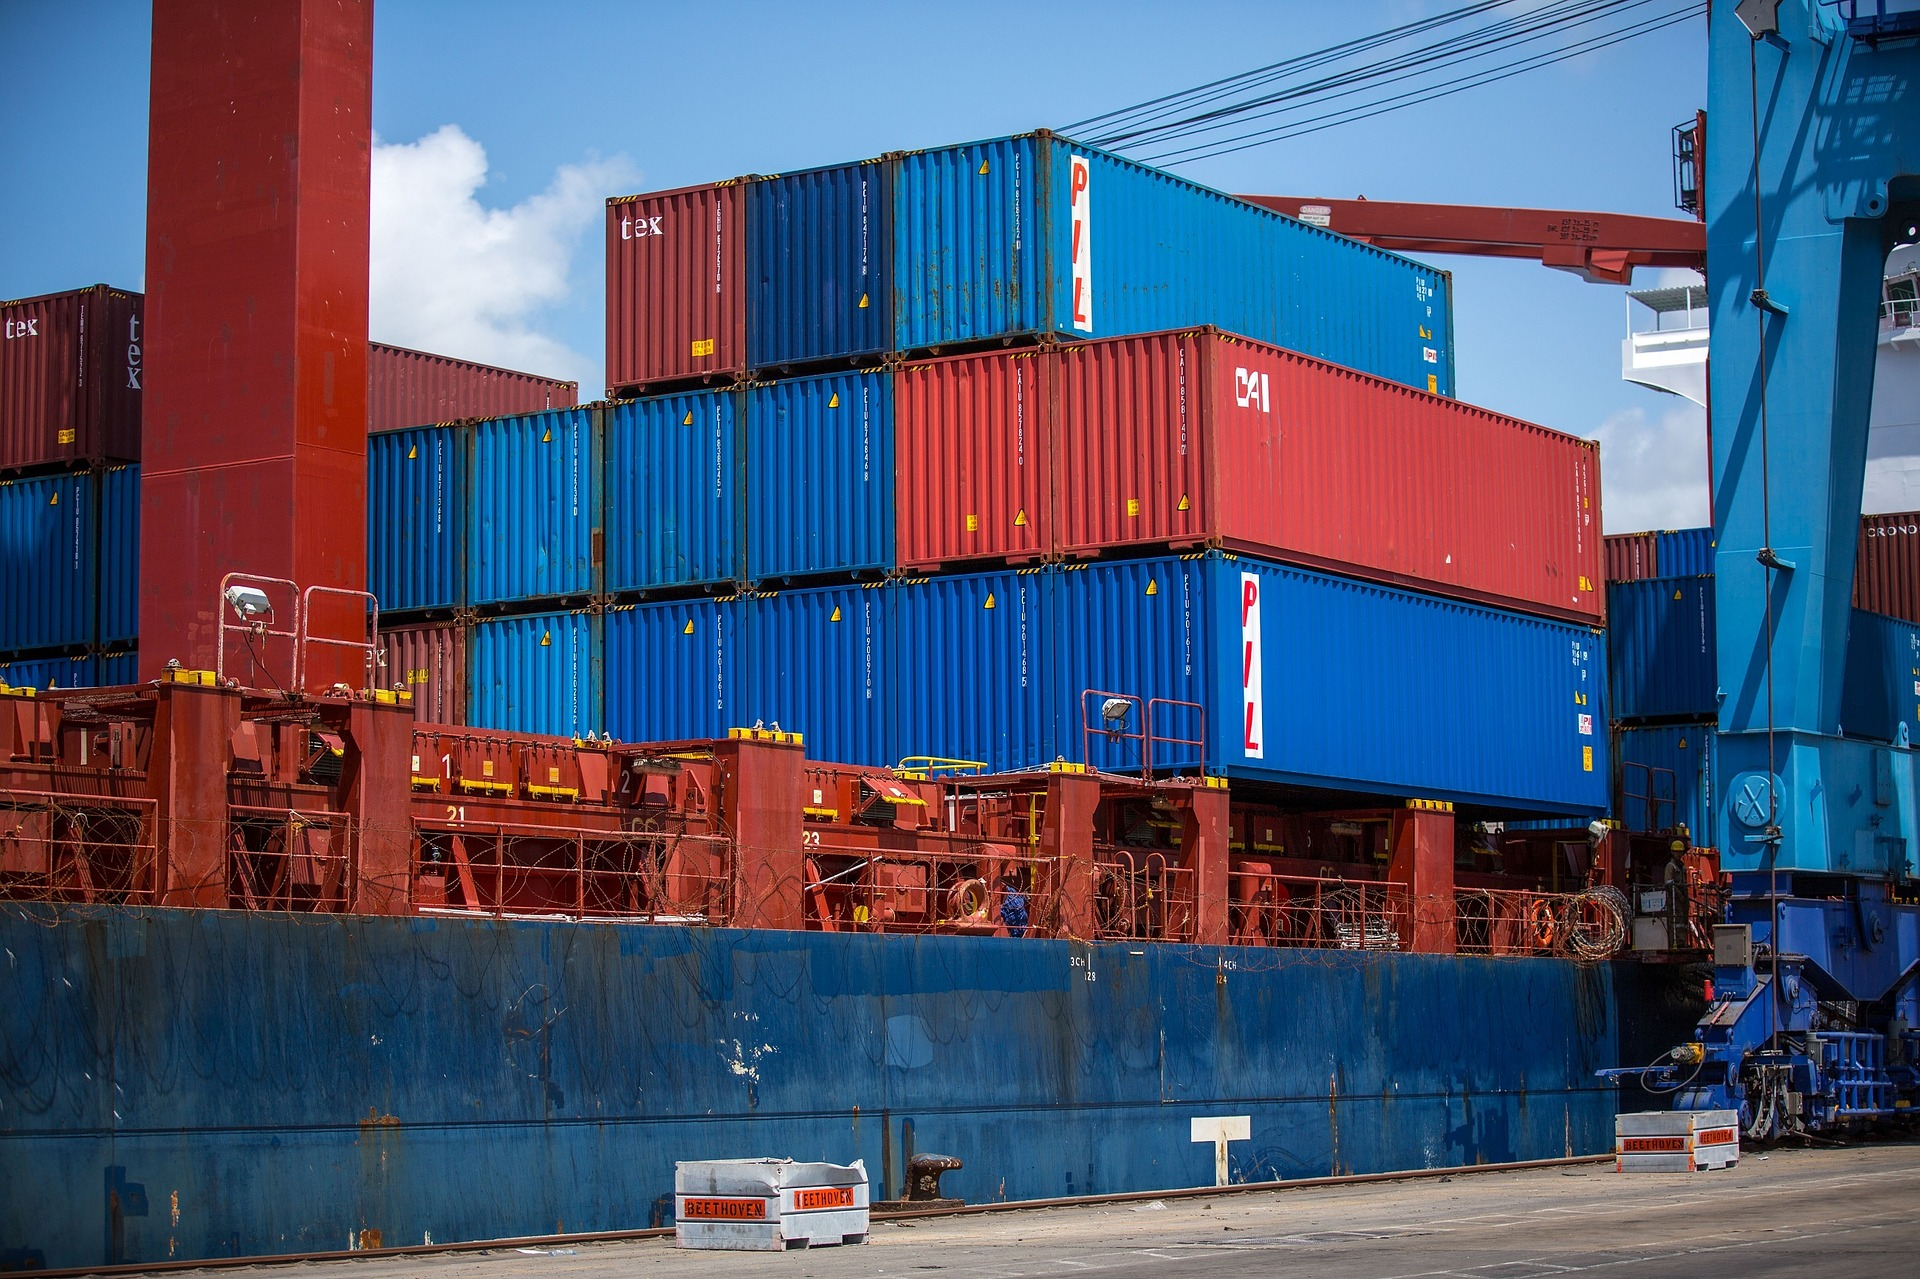 Damaged Goods and the Cargo Claim Procedure